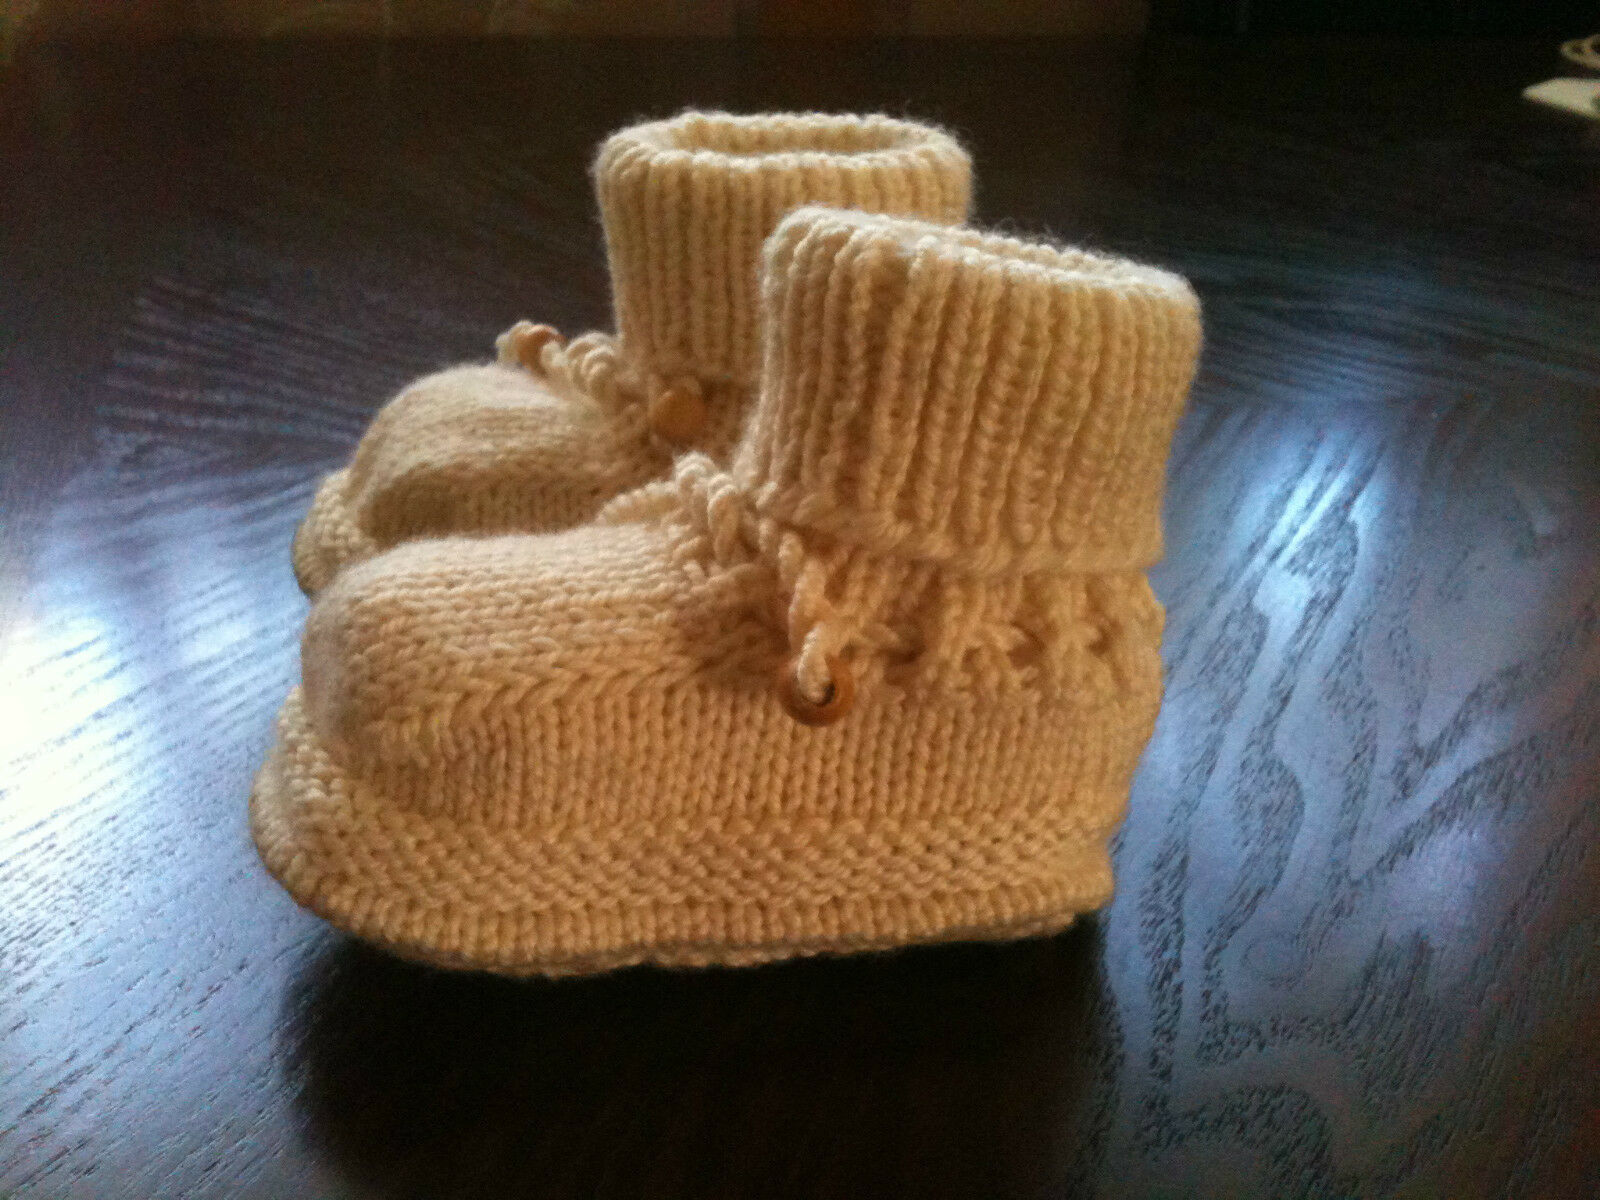 New Baby Girl/ Boy Cute and Warm Wool Blend White Knitted Shoes/ Boots 3-6 Month 1